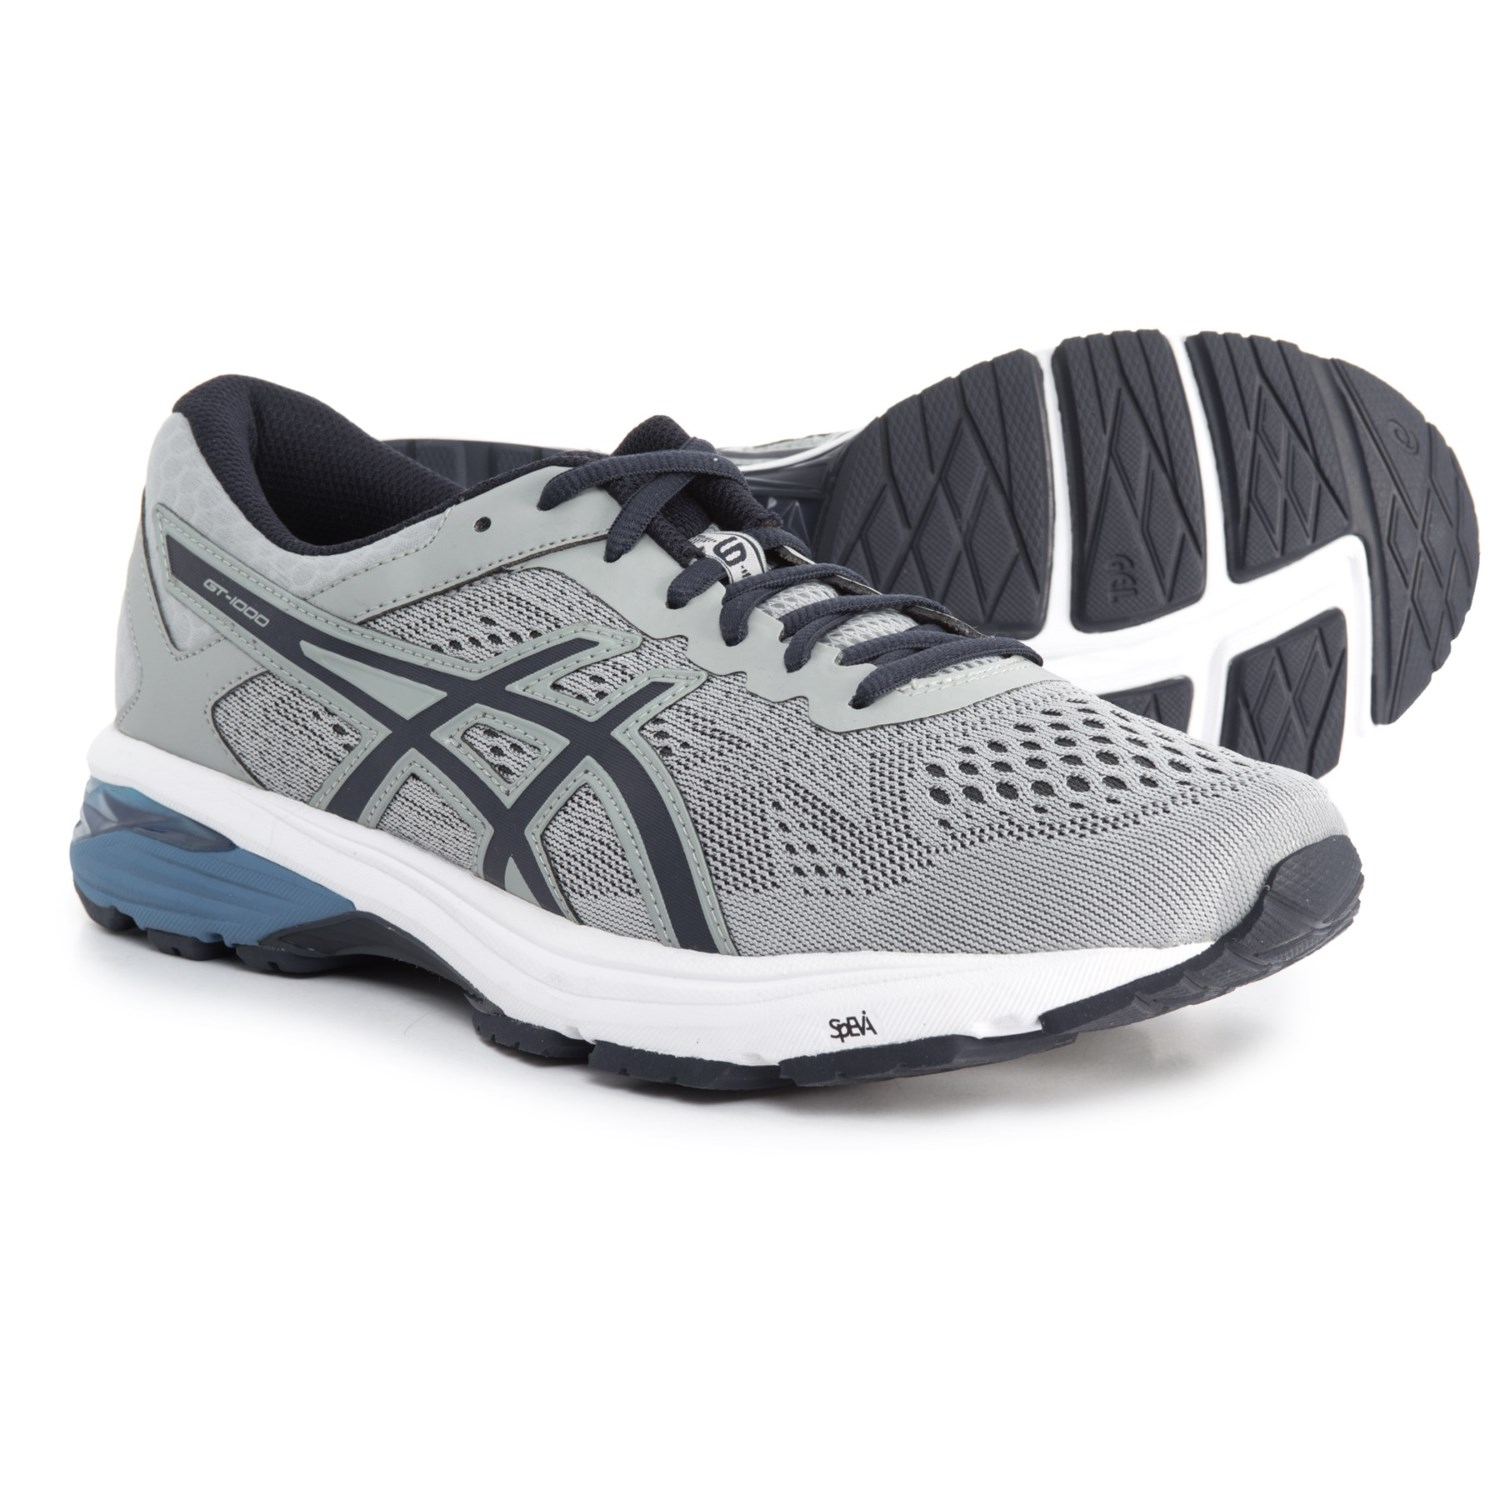 ASICS GT-1000 6 Running Shoes (For Men) in Mid Grey/Peacoat